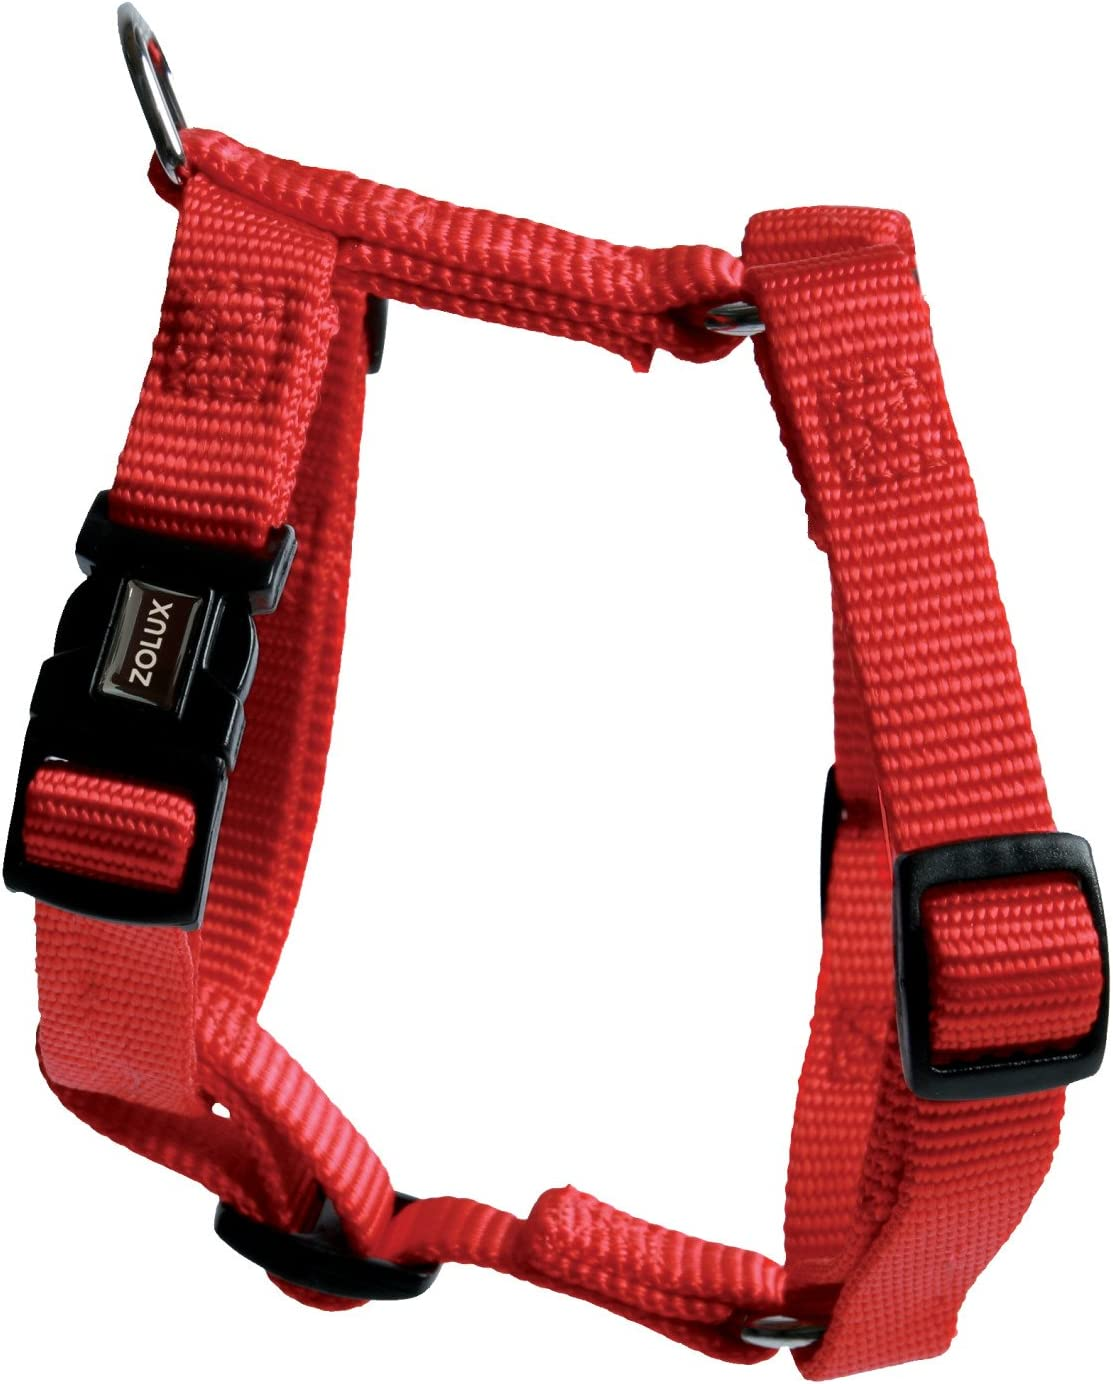 Zolux Max 70% OFF Adjustable Nylon Dog Max 61% OFF Harness Red Plain 40mm Width Colours